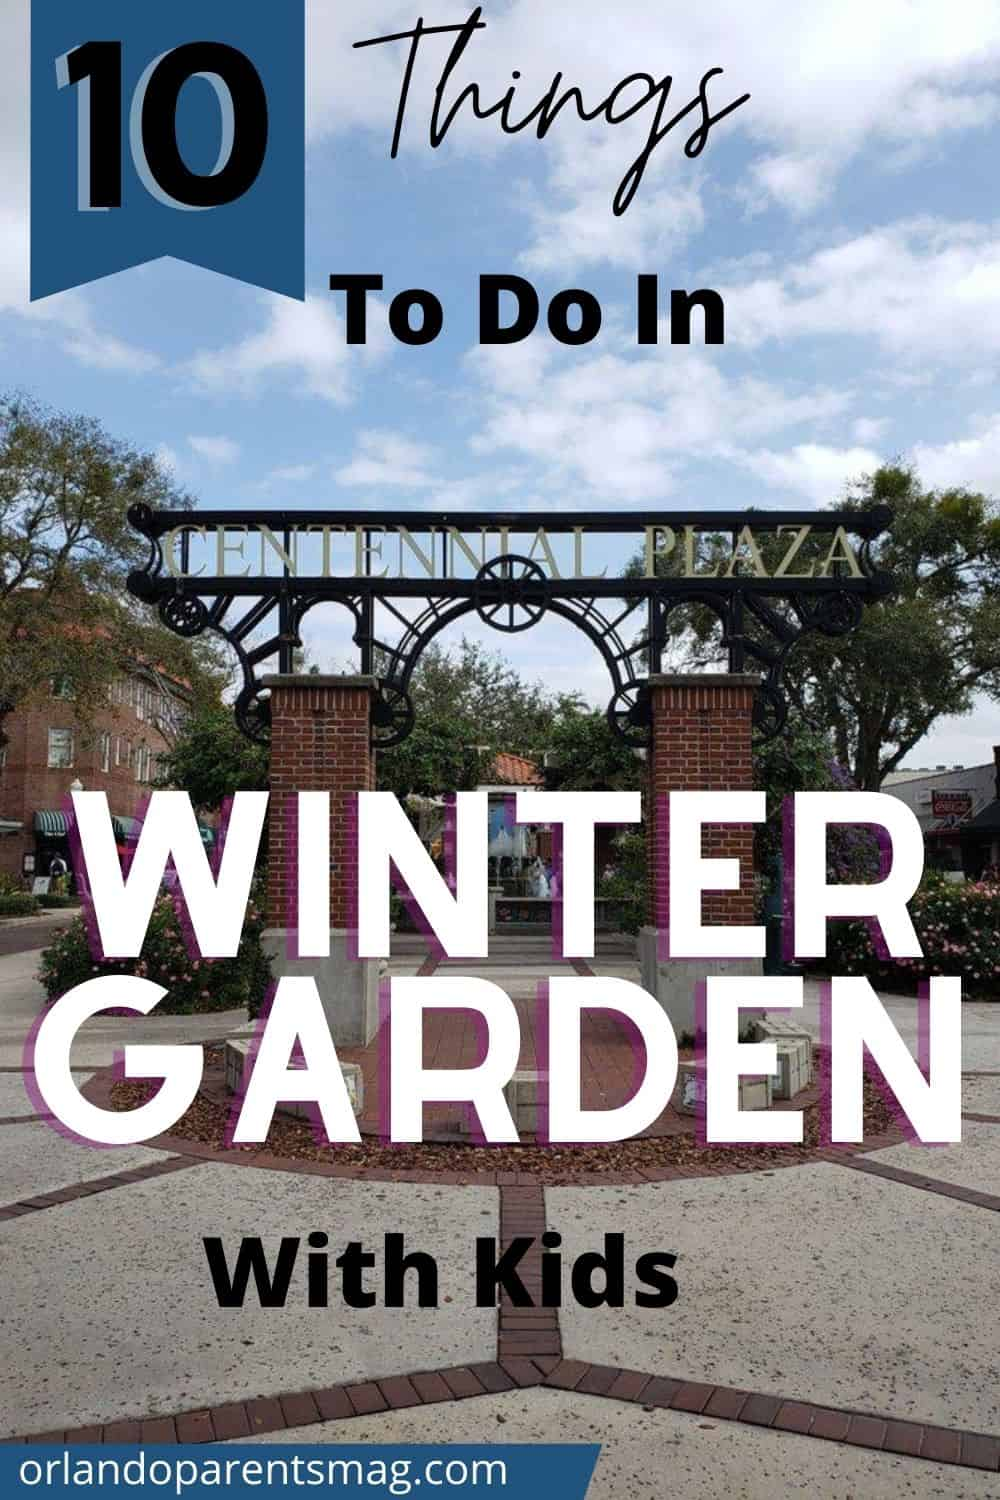 TO DO IN WINTER GARDEN